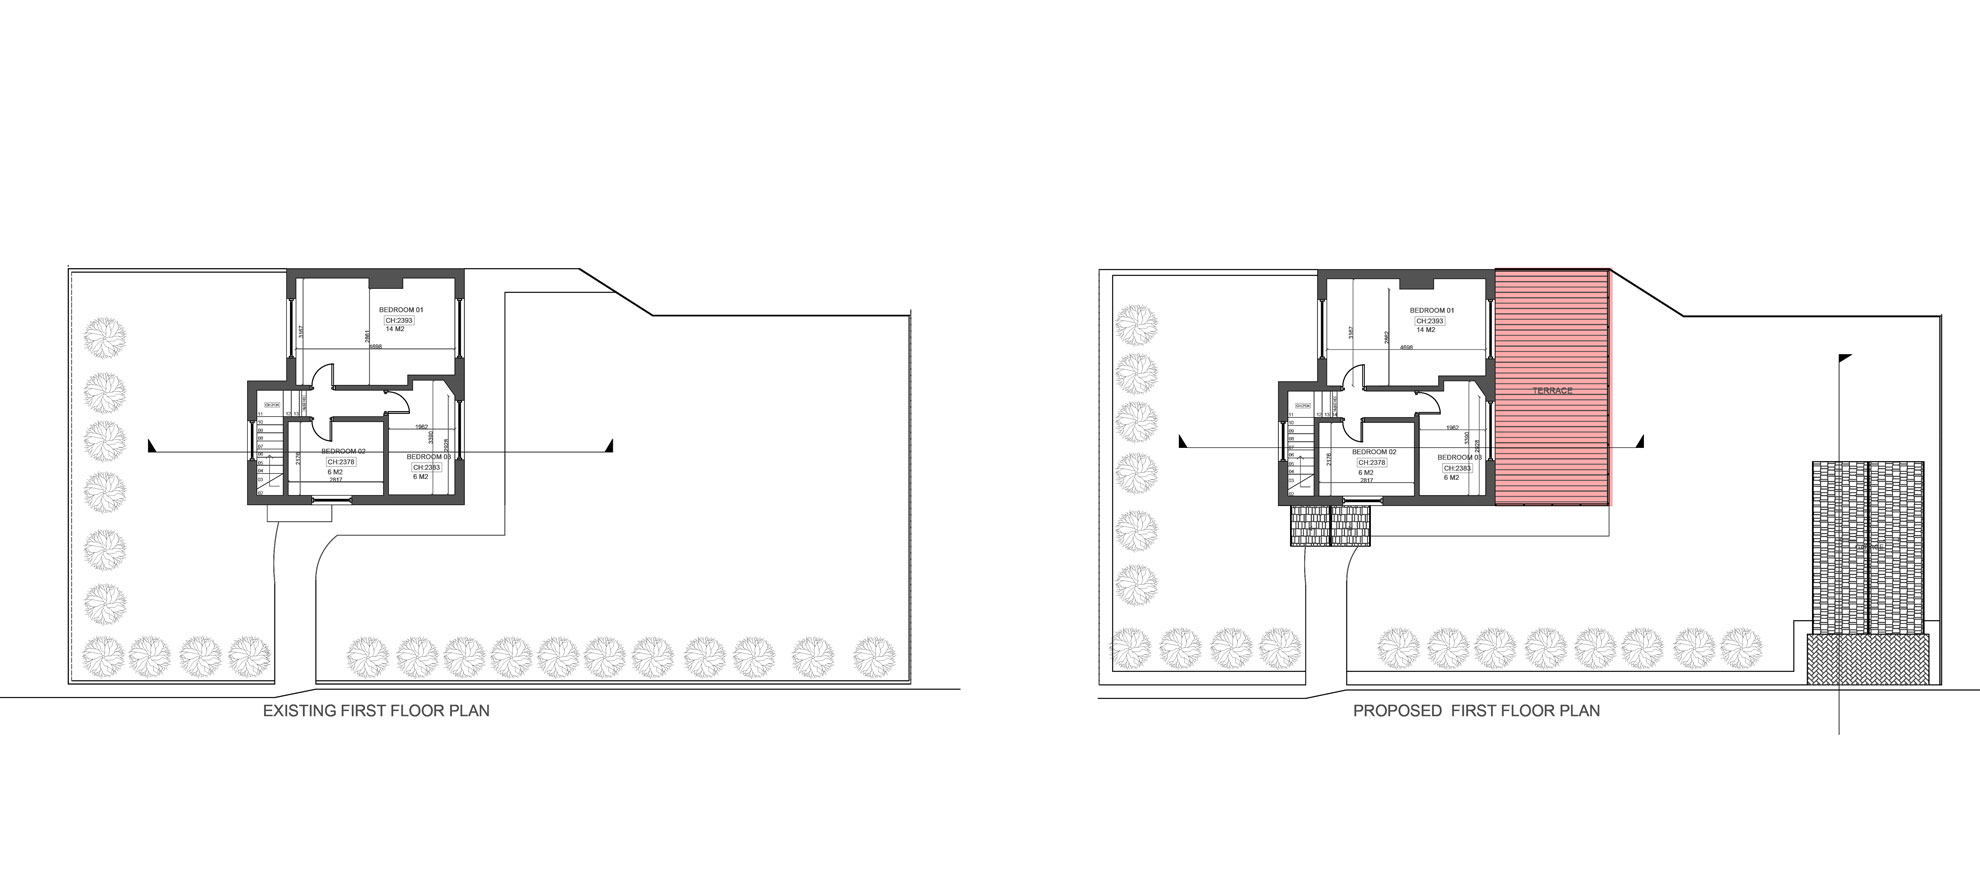 Roof-Terrace-&-Garage-conversion-in-Croydon-First-Floor-Plan